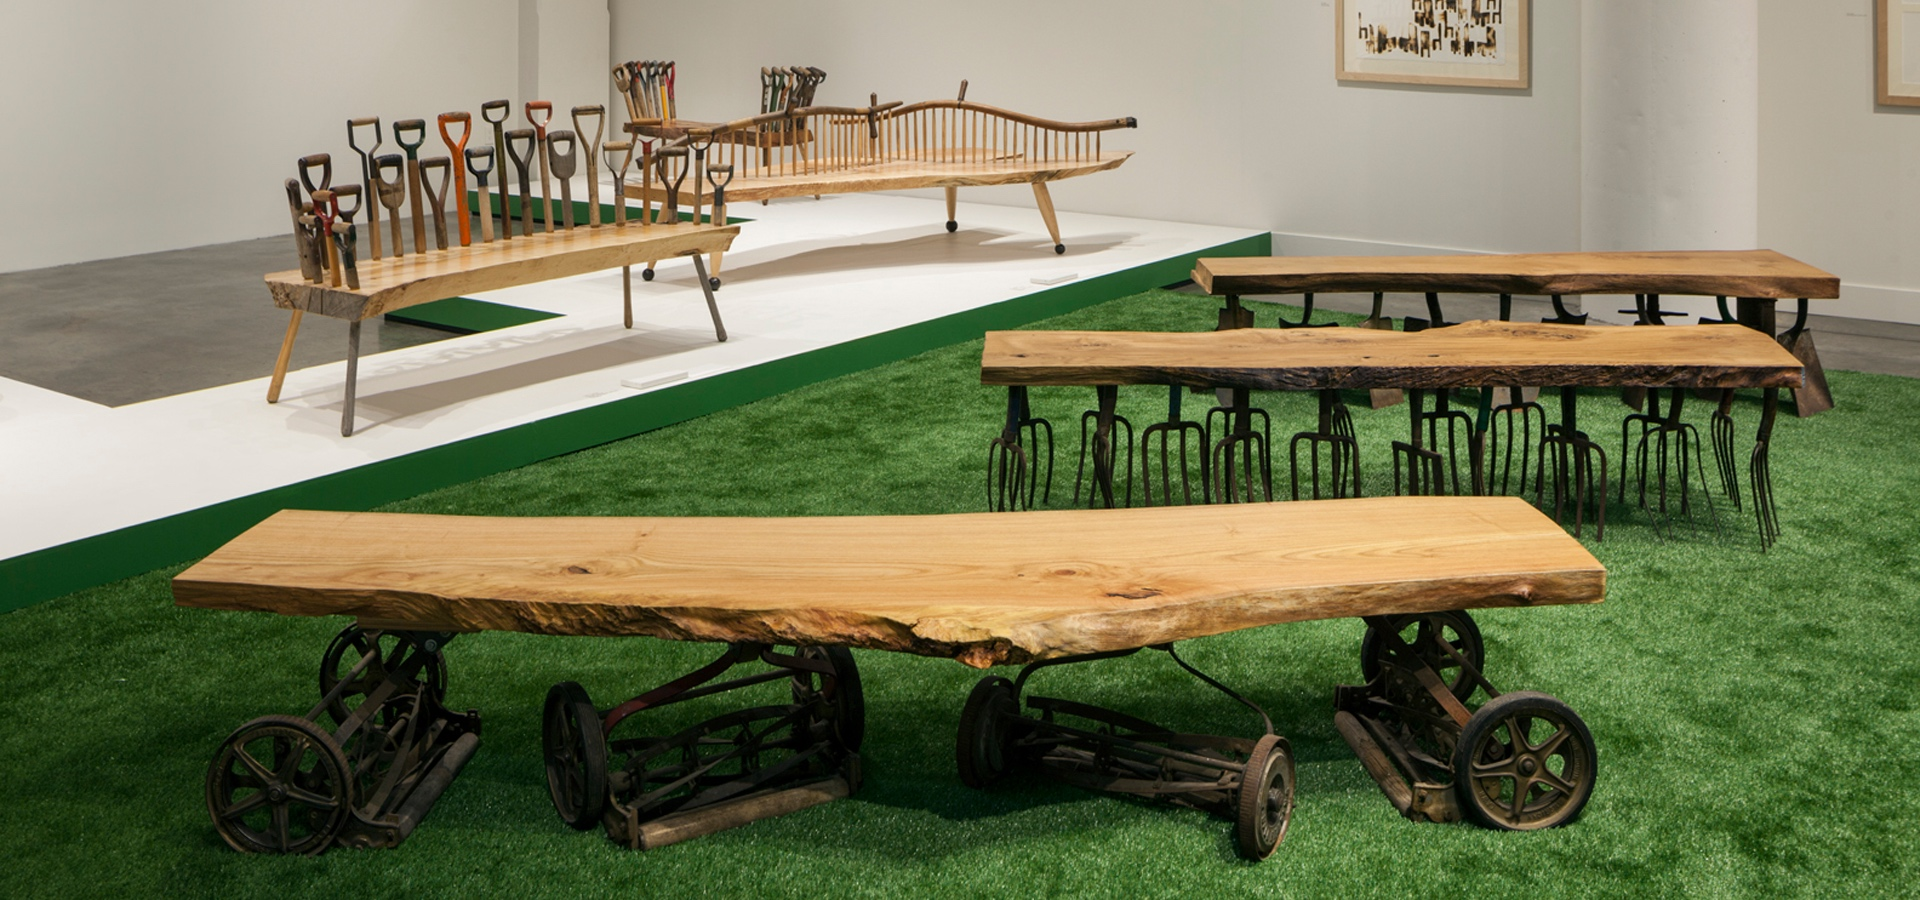 Furniture made with garden tools and other reused materials